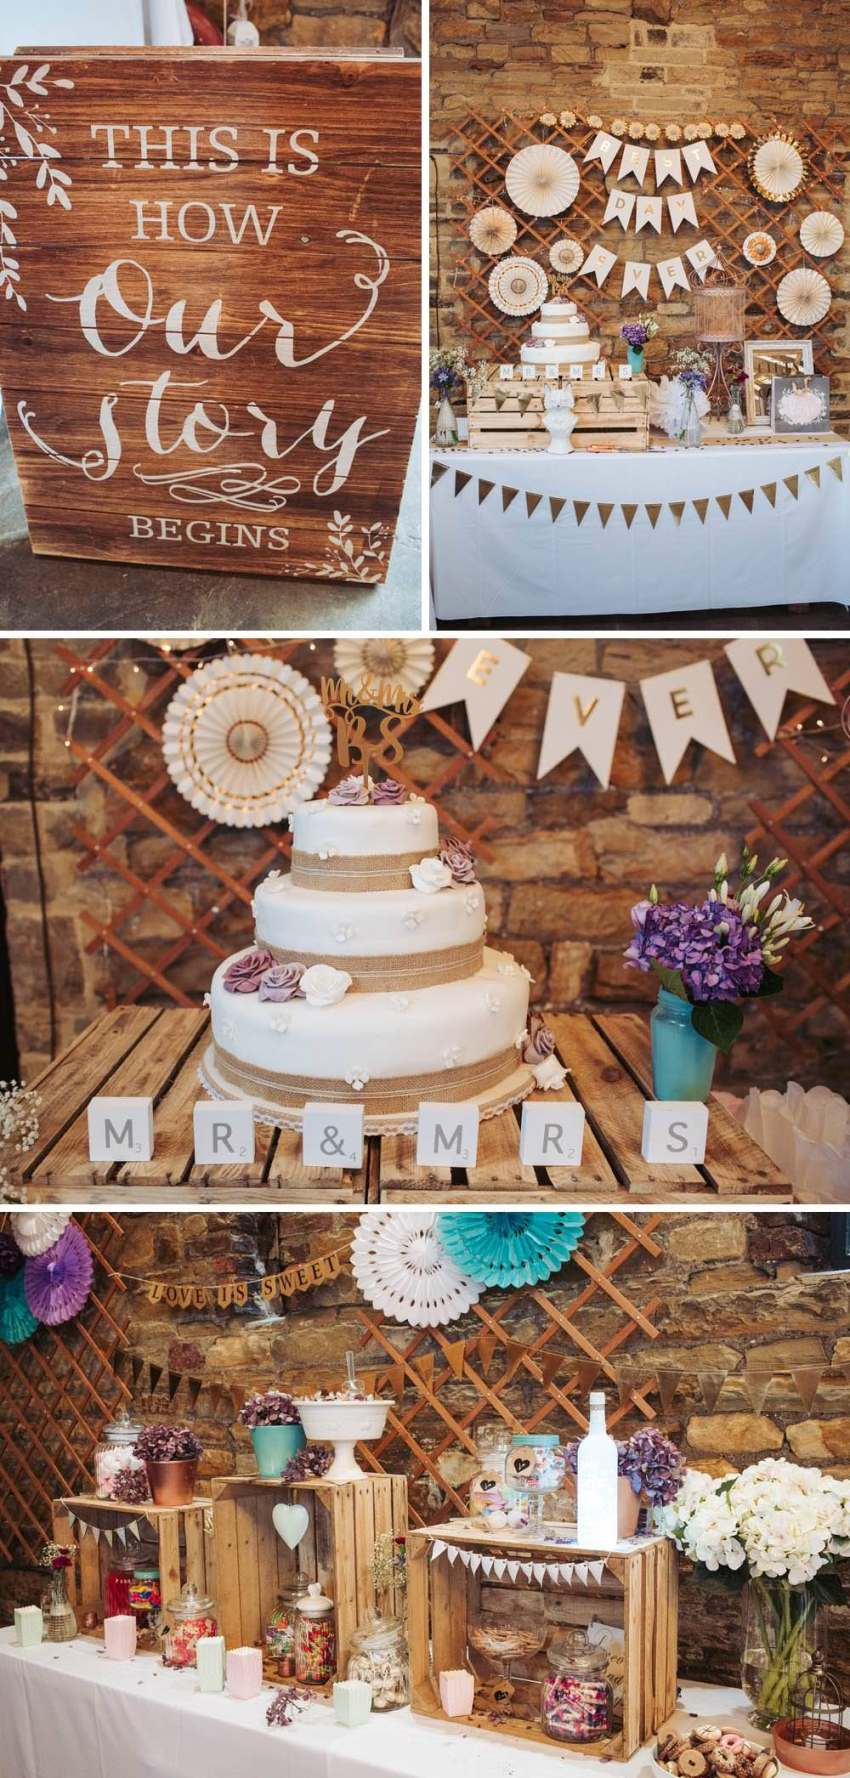 Ivory, white, gold and purple rustic DIY wedding decorations at Oakwell Hall.